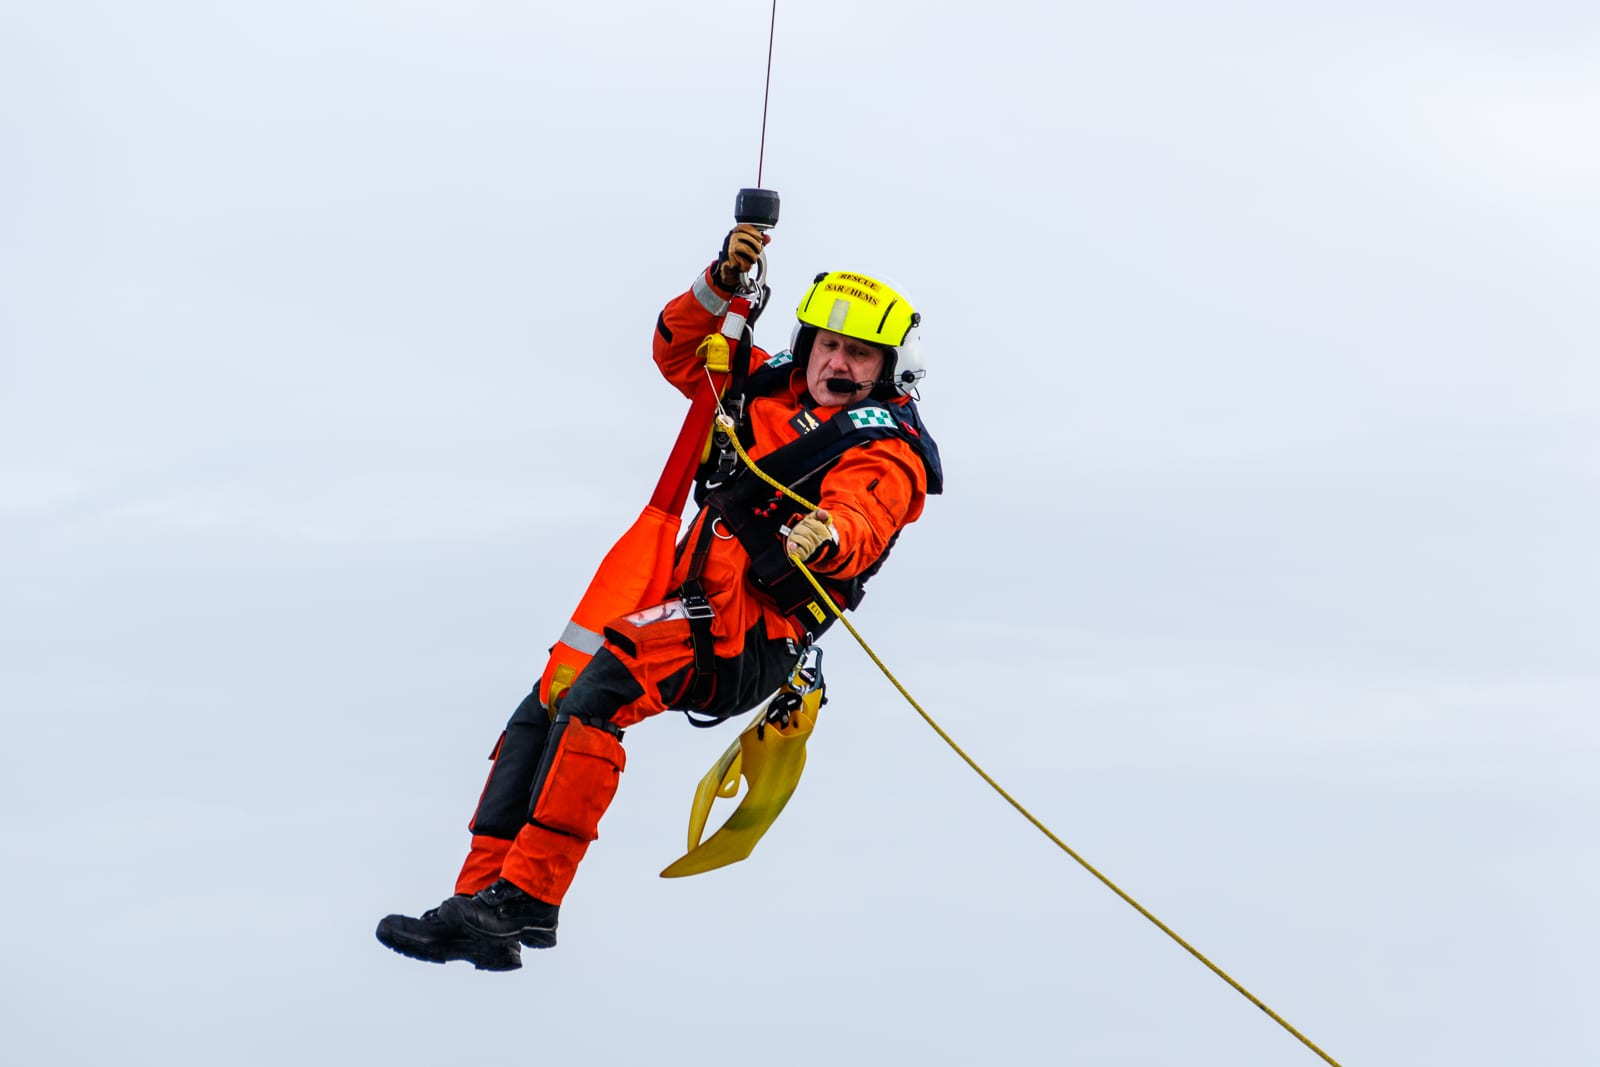 Winchman hoist harness